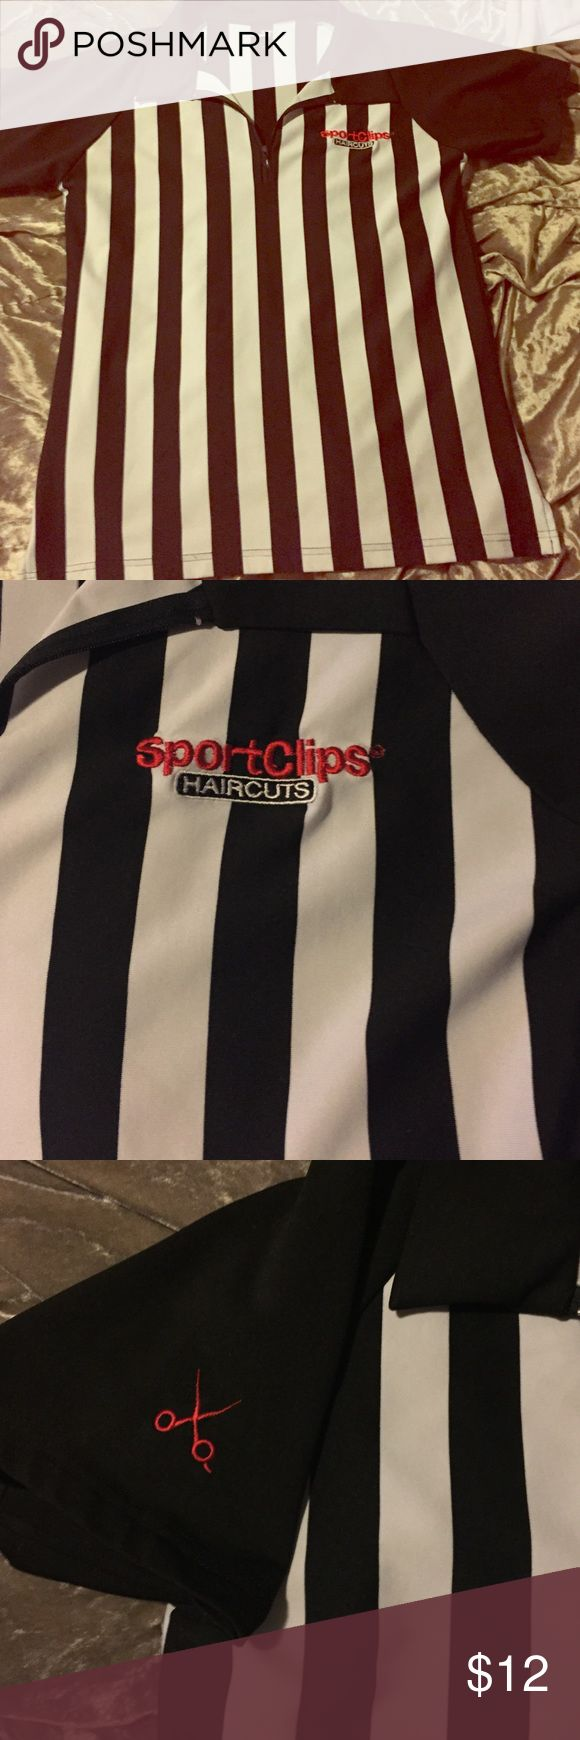 Official Sports Clips Referee uniform top Saved this from my early days for Halloween. Could be used properly or for lots of fun if ya been there done that. Haha. Prob size medium. Feel free to request measurements. sports clips Other